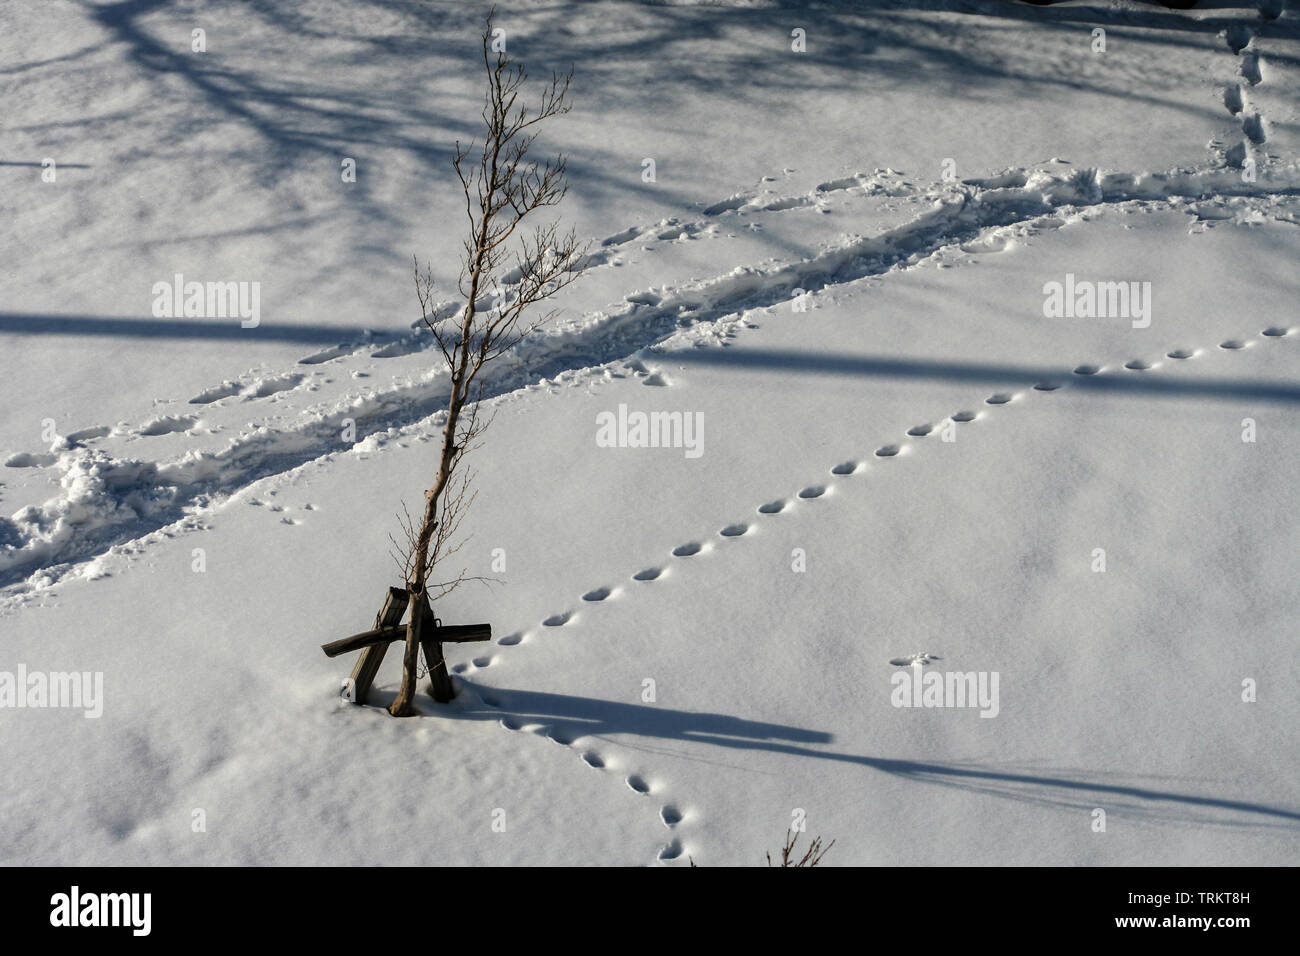 Abstract shot of small tree in winter snow, with animal tracks, footprints, cycle furrow, and shadows. Kanazawa, Ishikawa Prefecture, Western Japan. - Stock Image